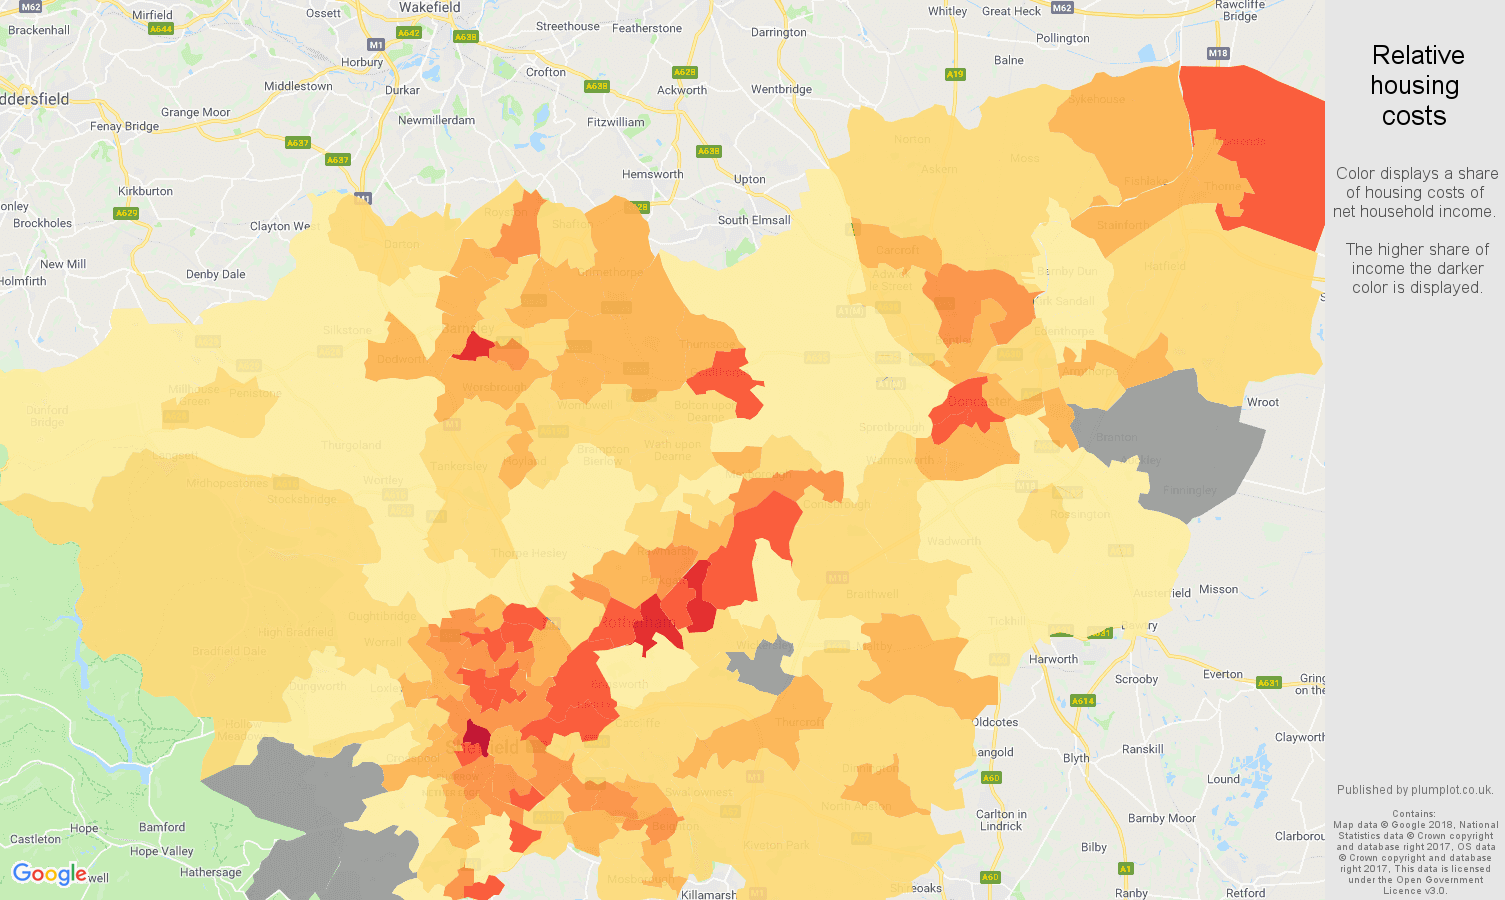 South Yorkshire relative housing costs map